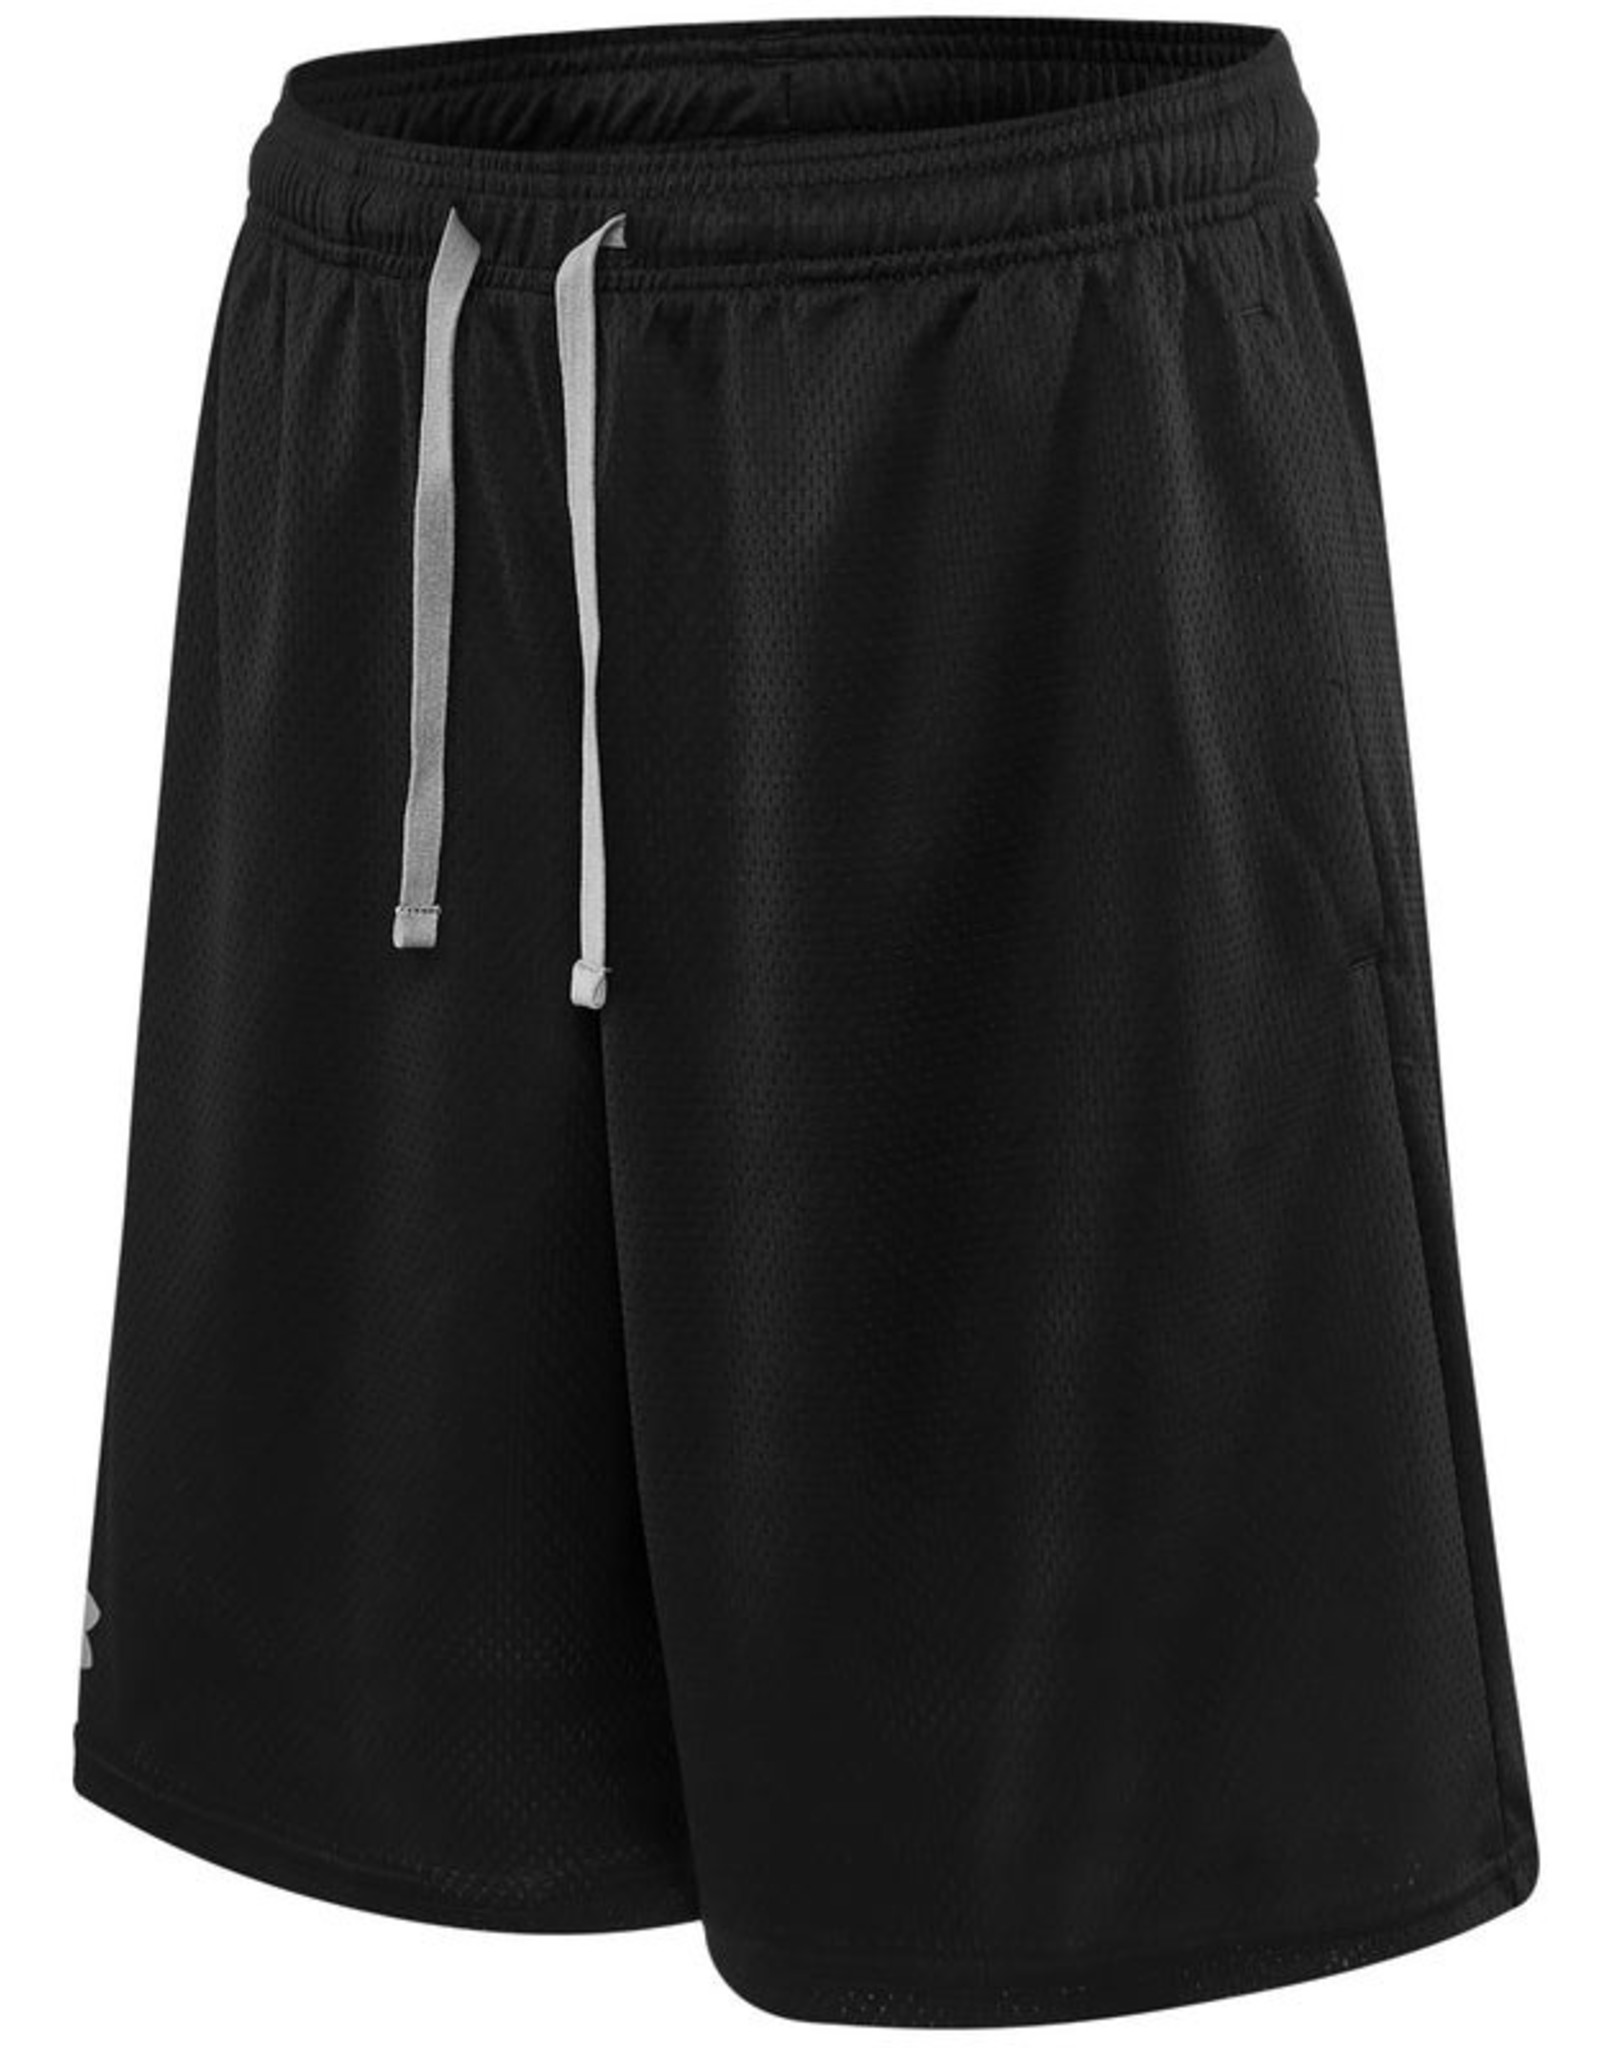 UNDER ARMOUR SHORTS UNDER ARMOUR MESH HOMME